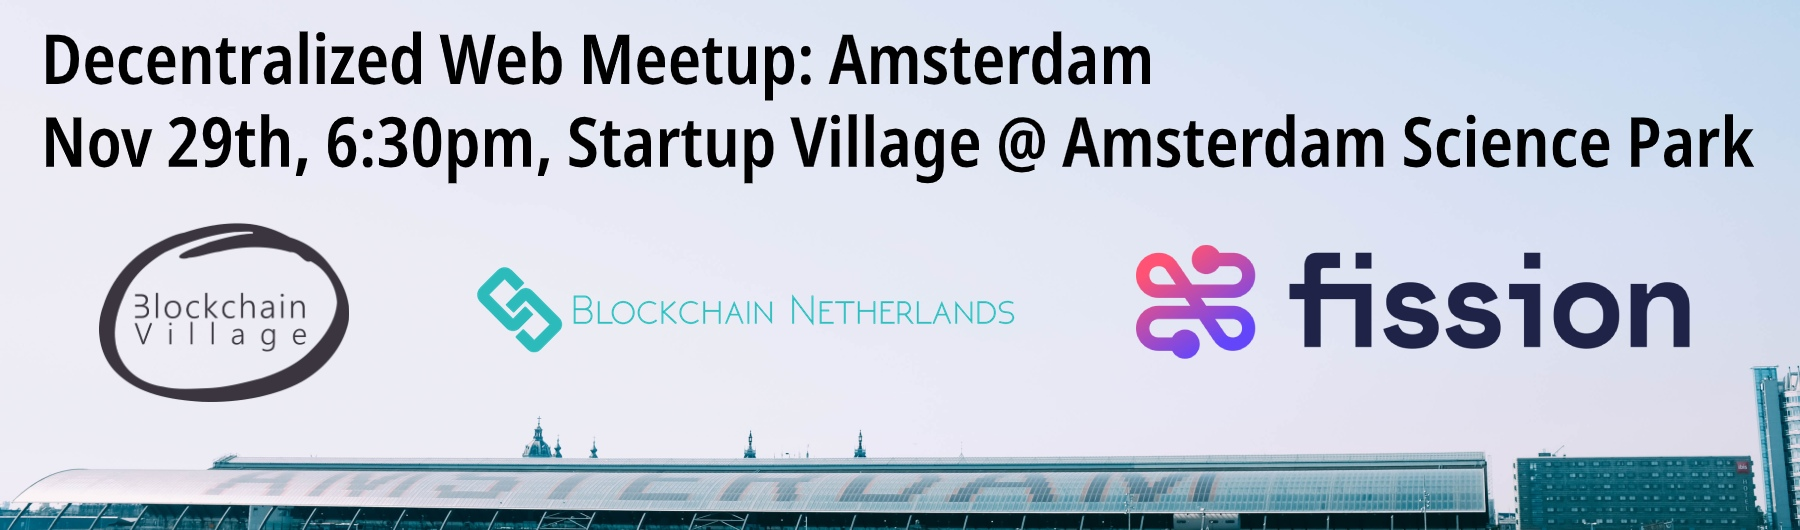 Decentralized Web Meetup Amsterdam